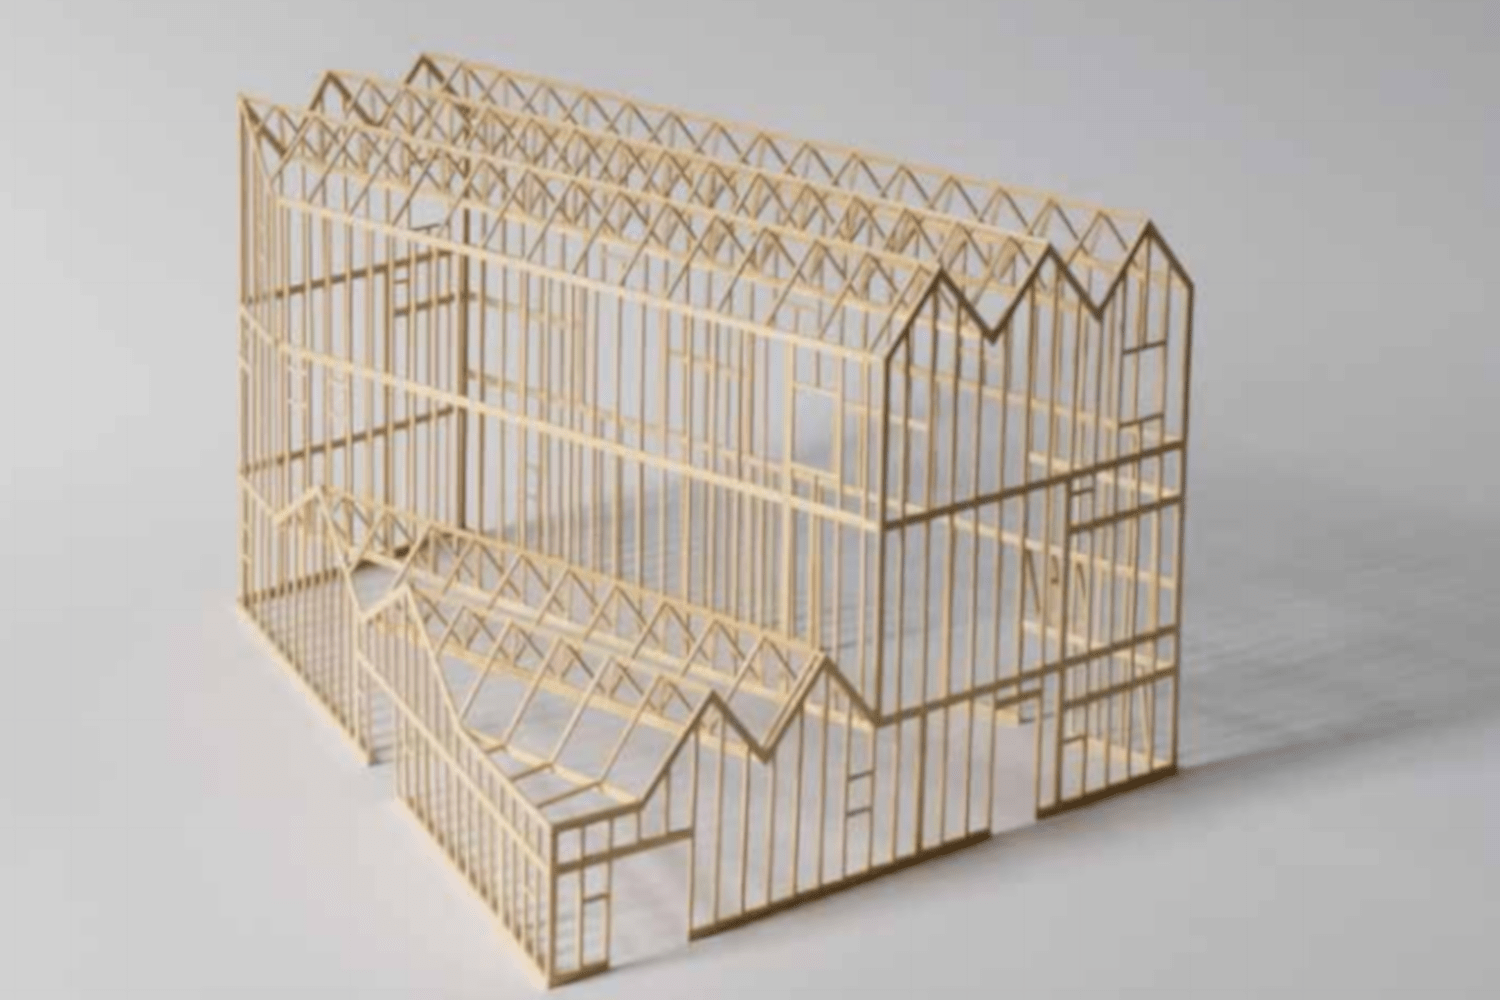 Photo of a model of the building design